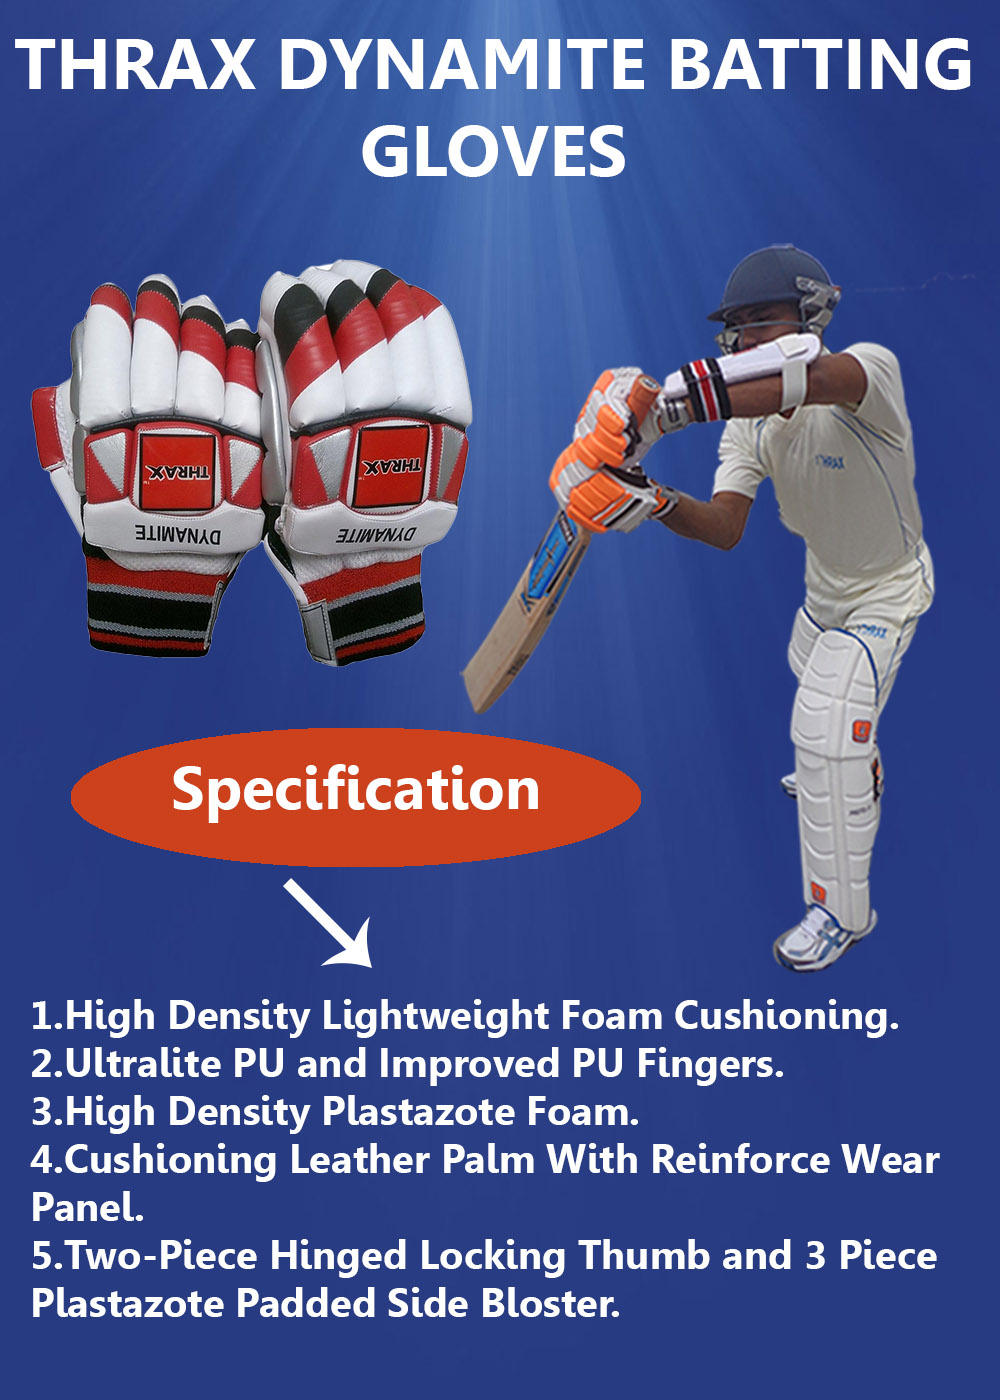 Thrax-Dynamite-Cricket-Batting-Gloves